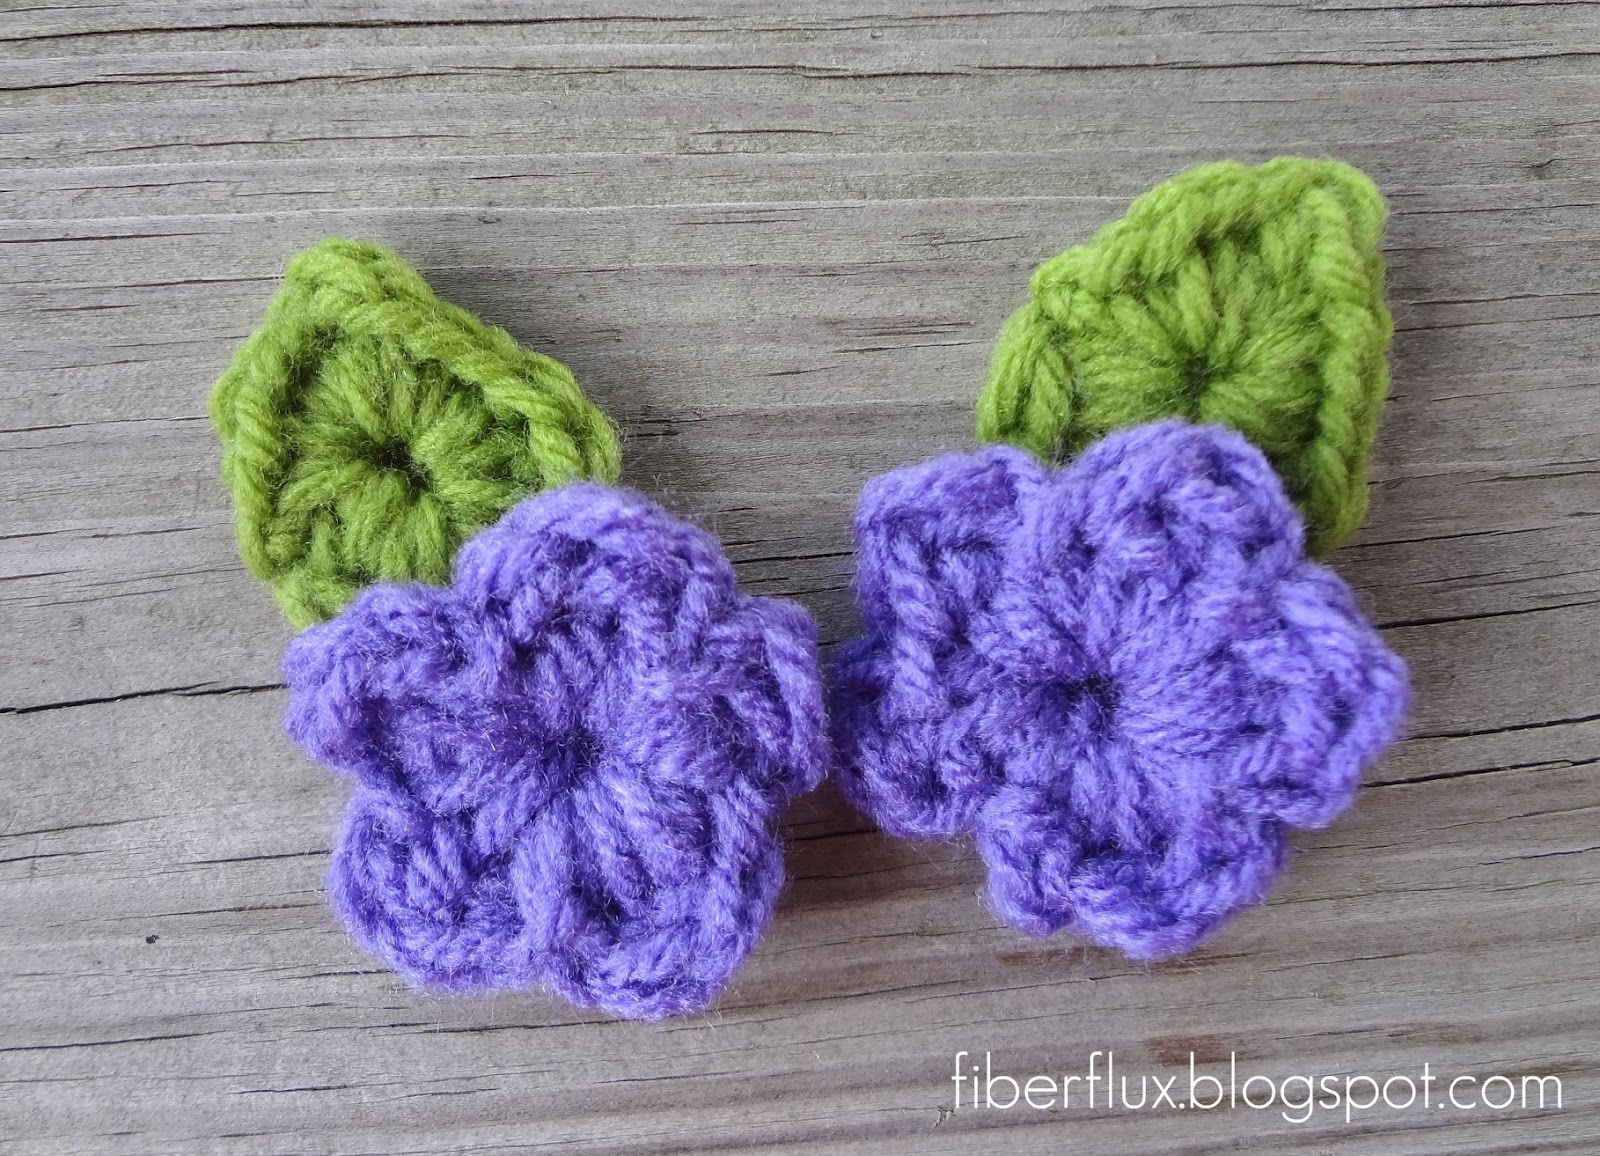 Crochet Patterns Free Leaf : Fiber Flux: Free Crochet Pattern...One Round Leaf (With Stem)